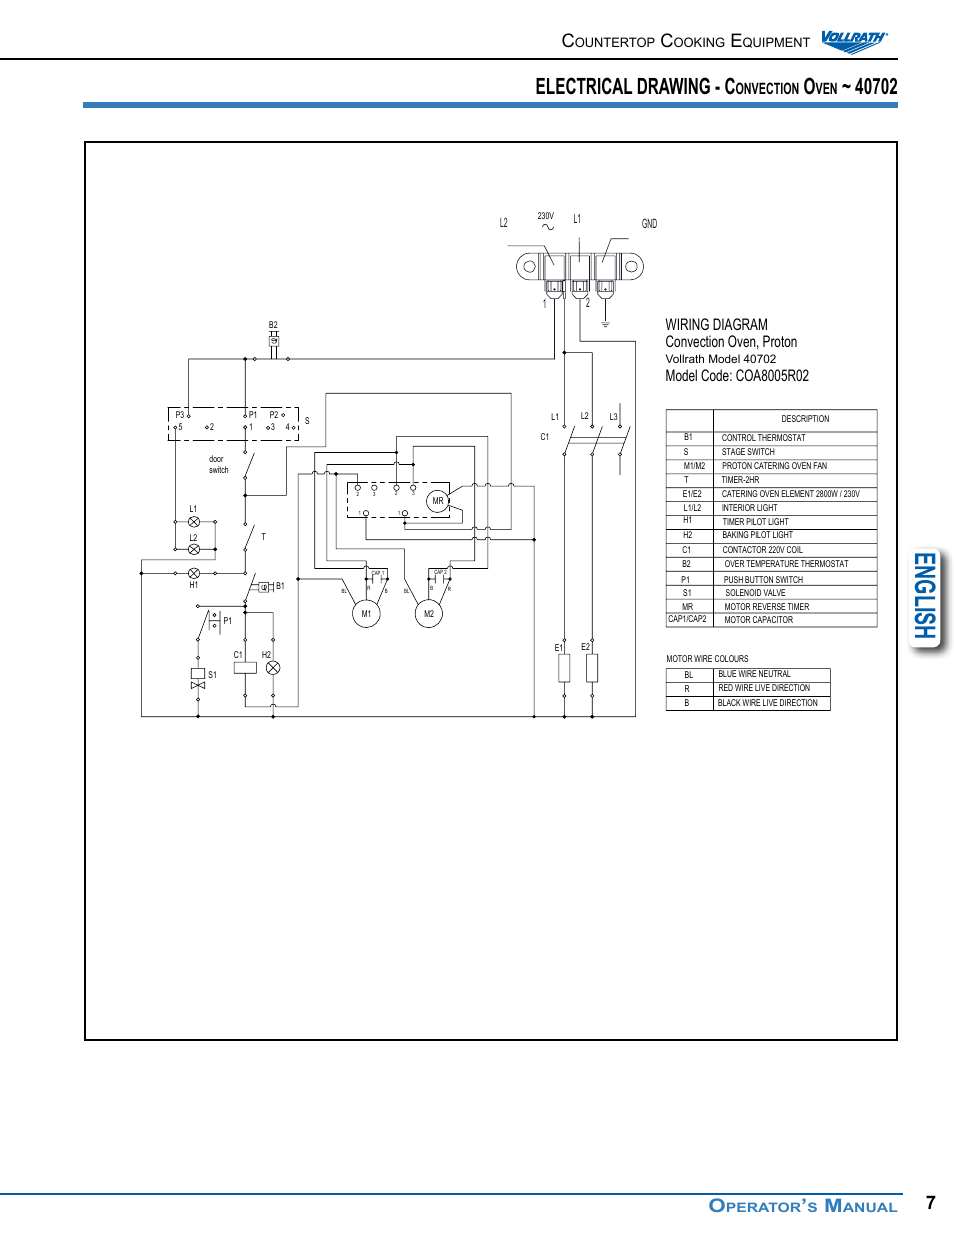 English Electrical Drawing C Onvection Vollrath Cayenne Countertop Convection Oven Wiring Diagram Ovens Operator Manual User Page 7 16